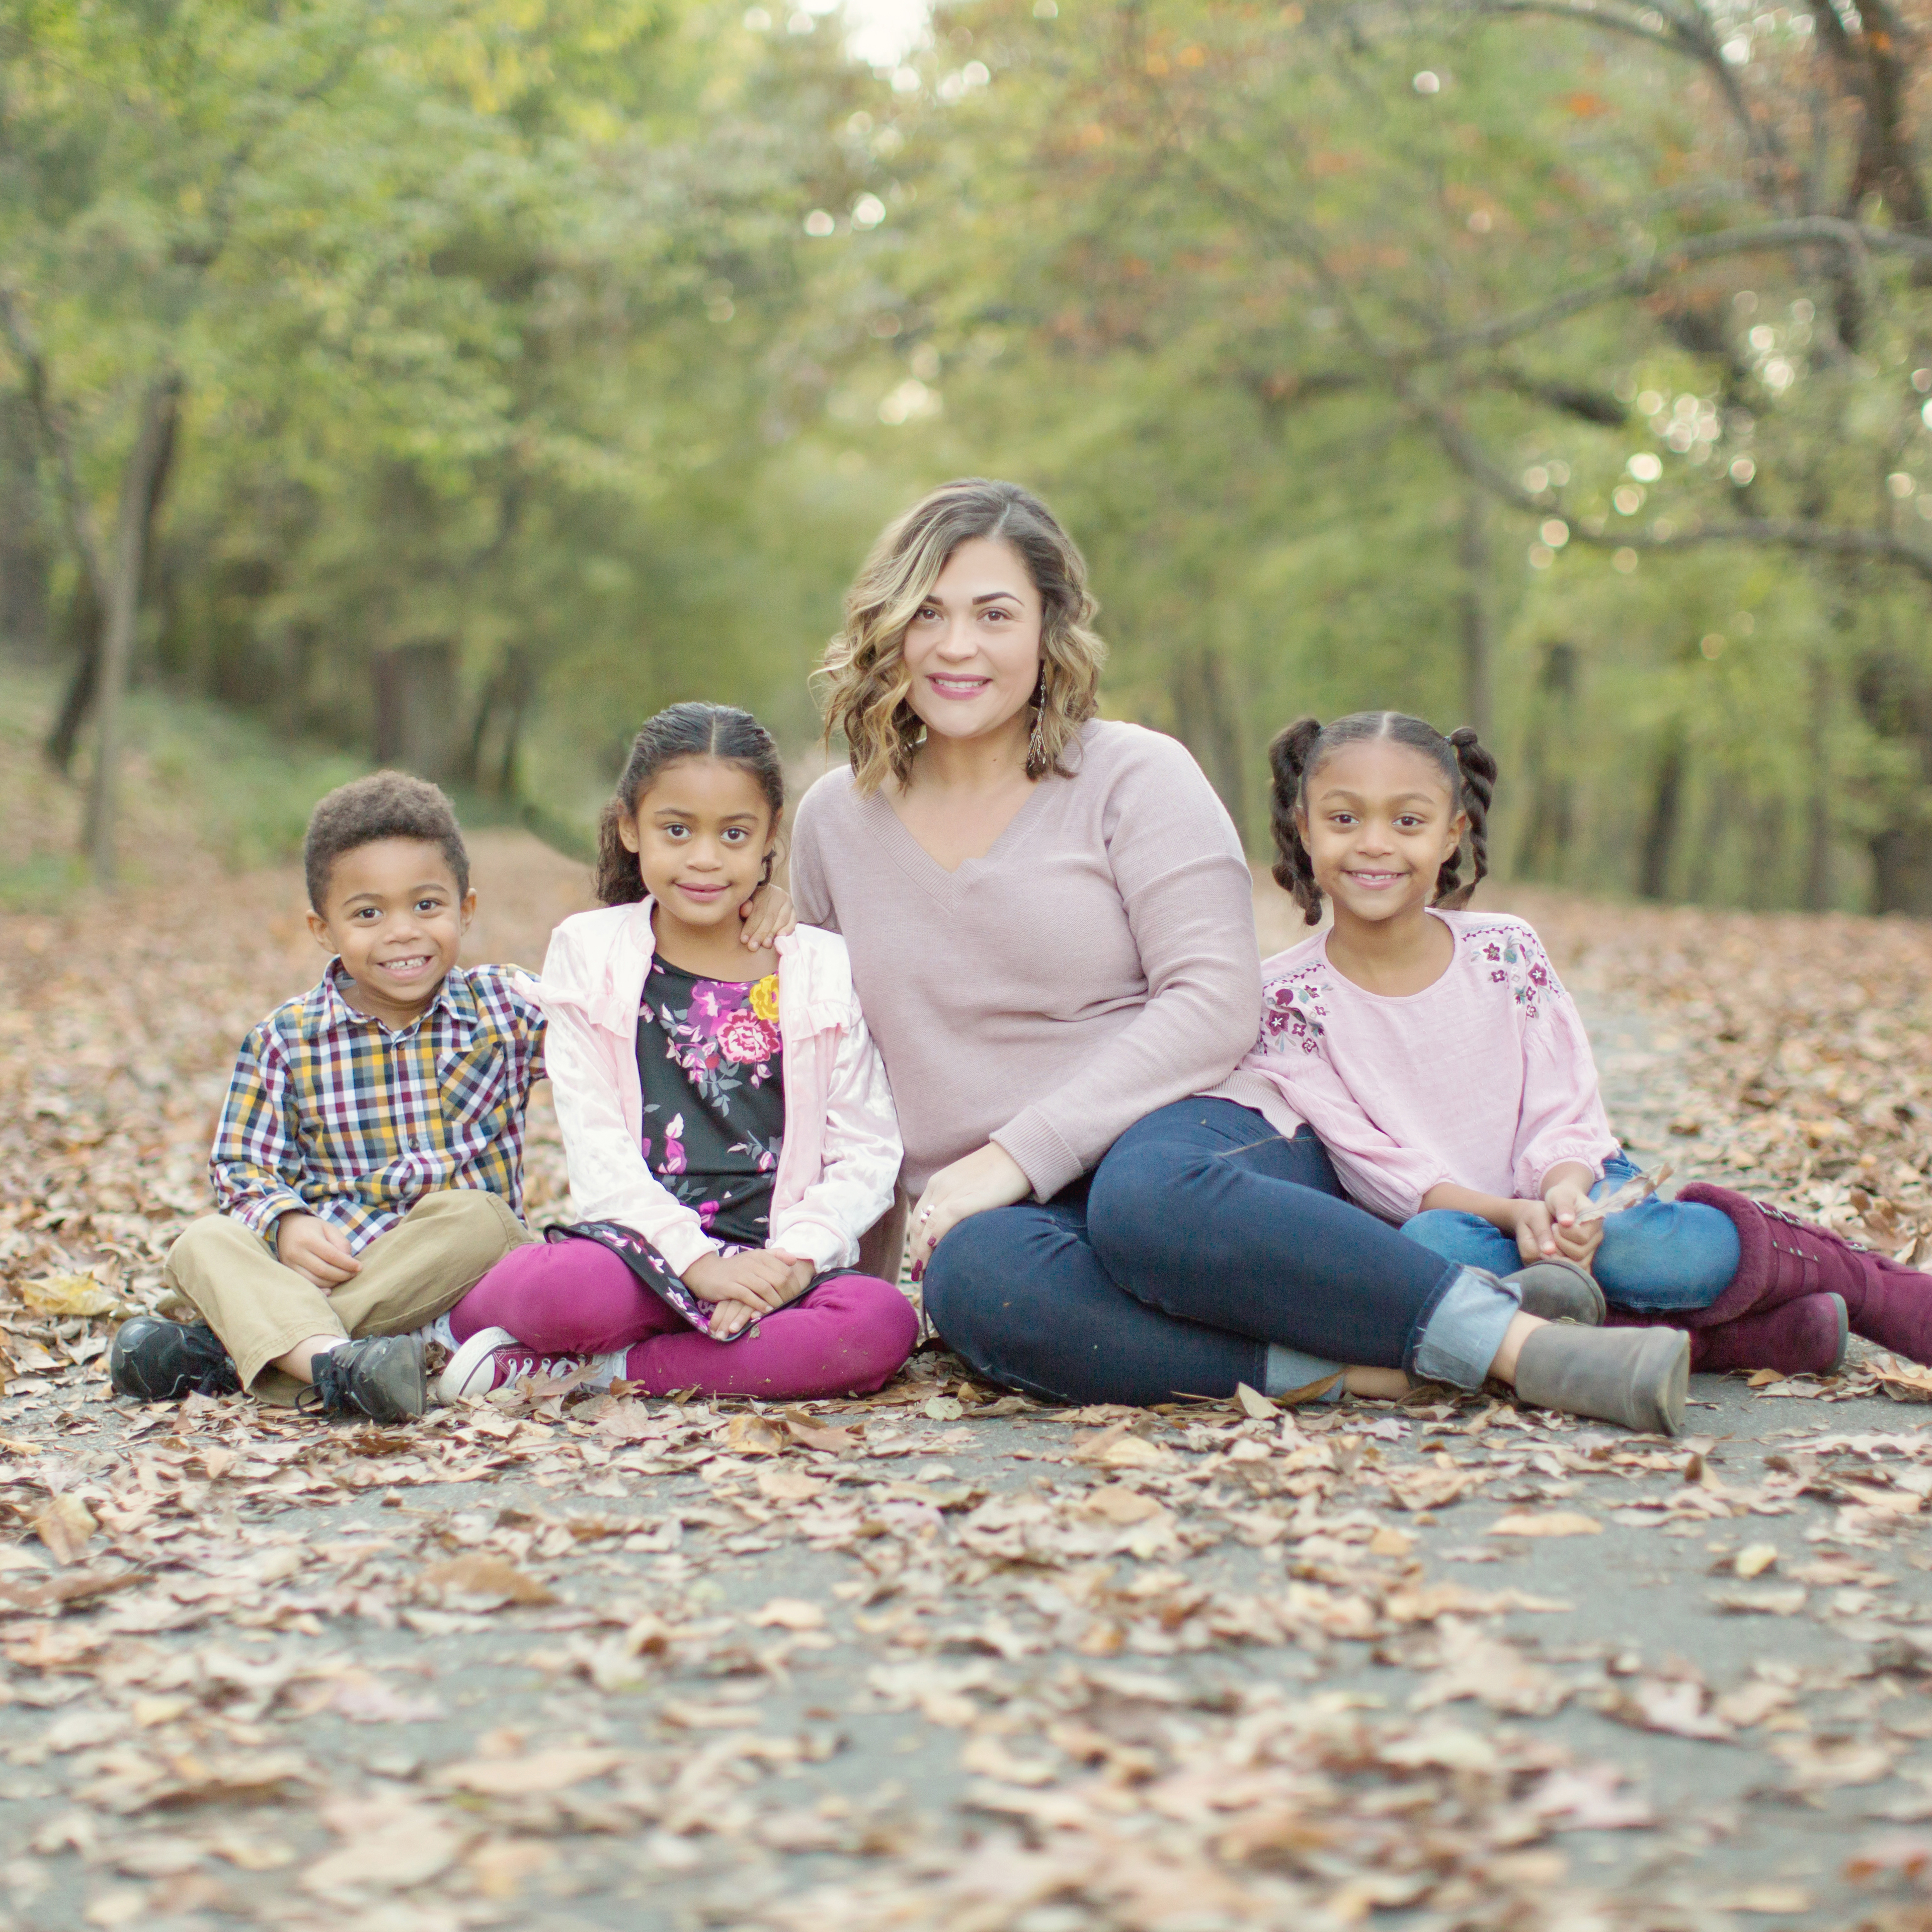 Family Portrait Photographer Single mom with three kids color coordinated in purple